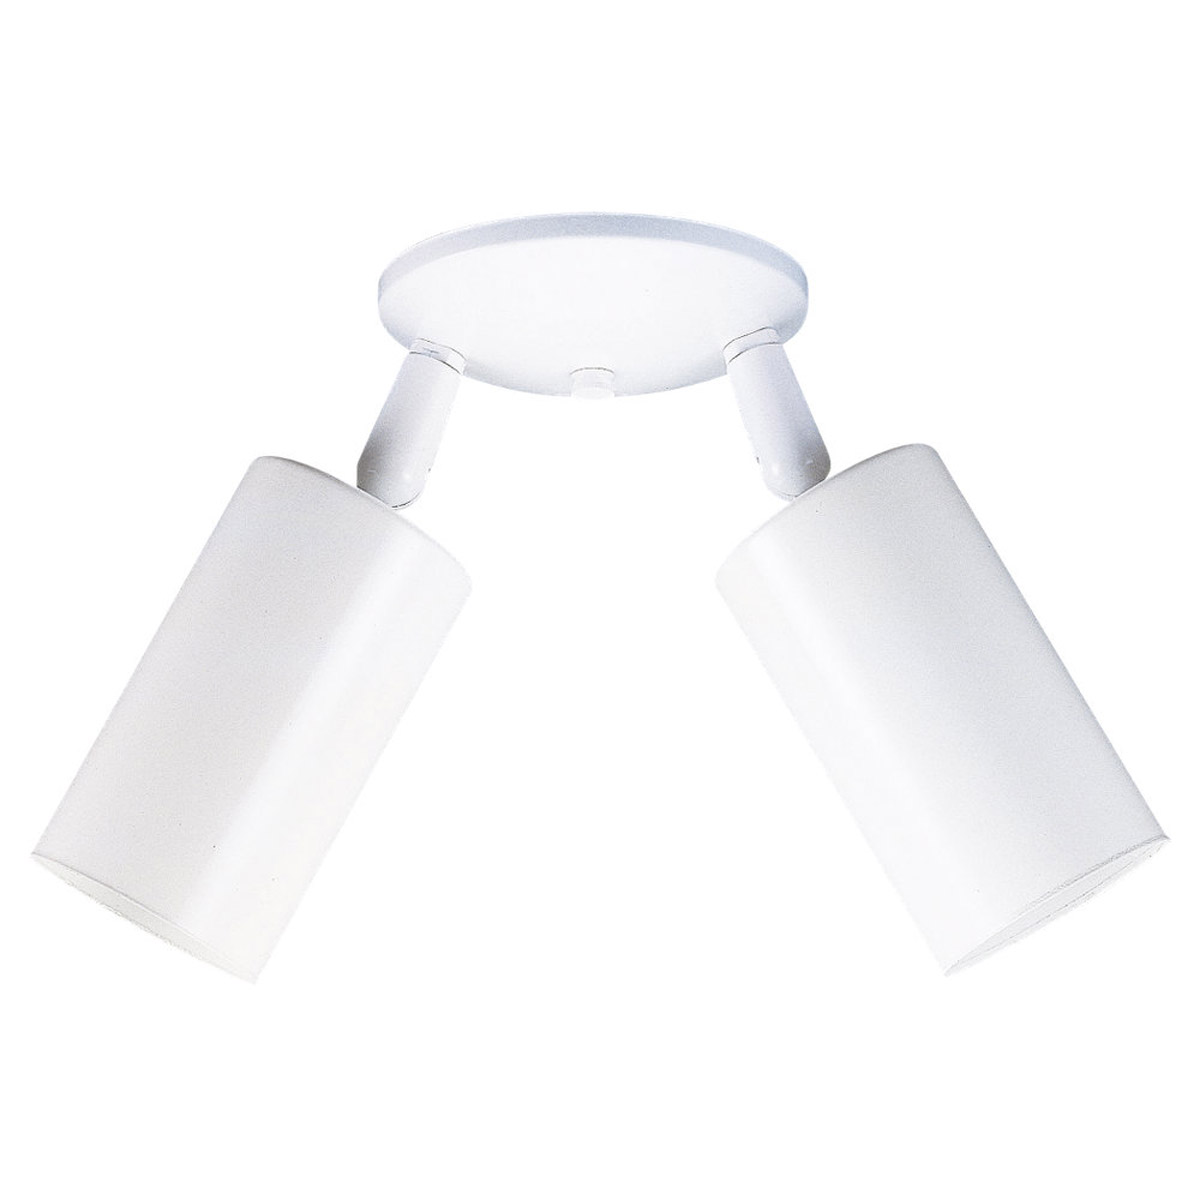 Sea Gull Lighting Bullets 2 Light Directional Ceiling Light in White 2013-15 photo